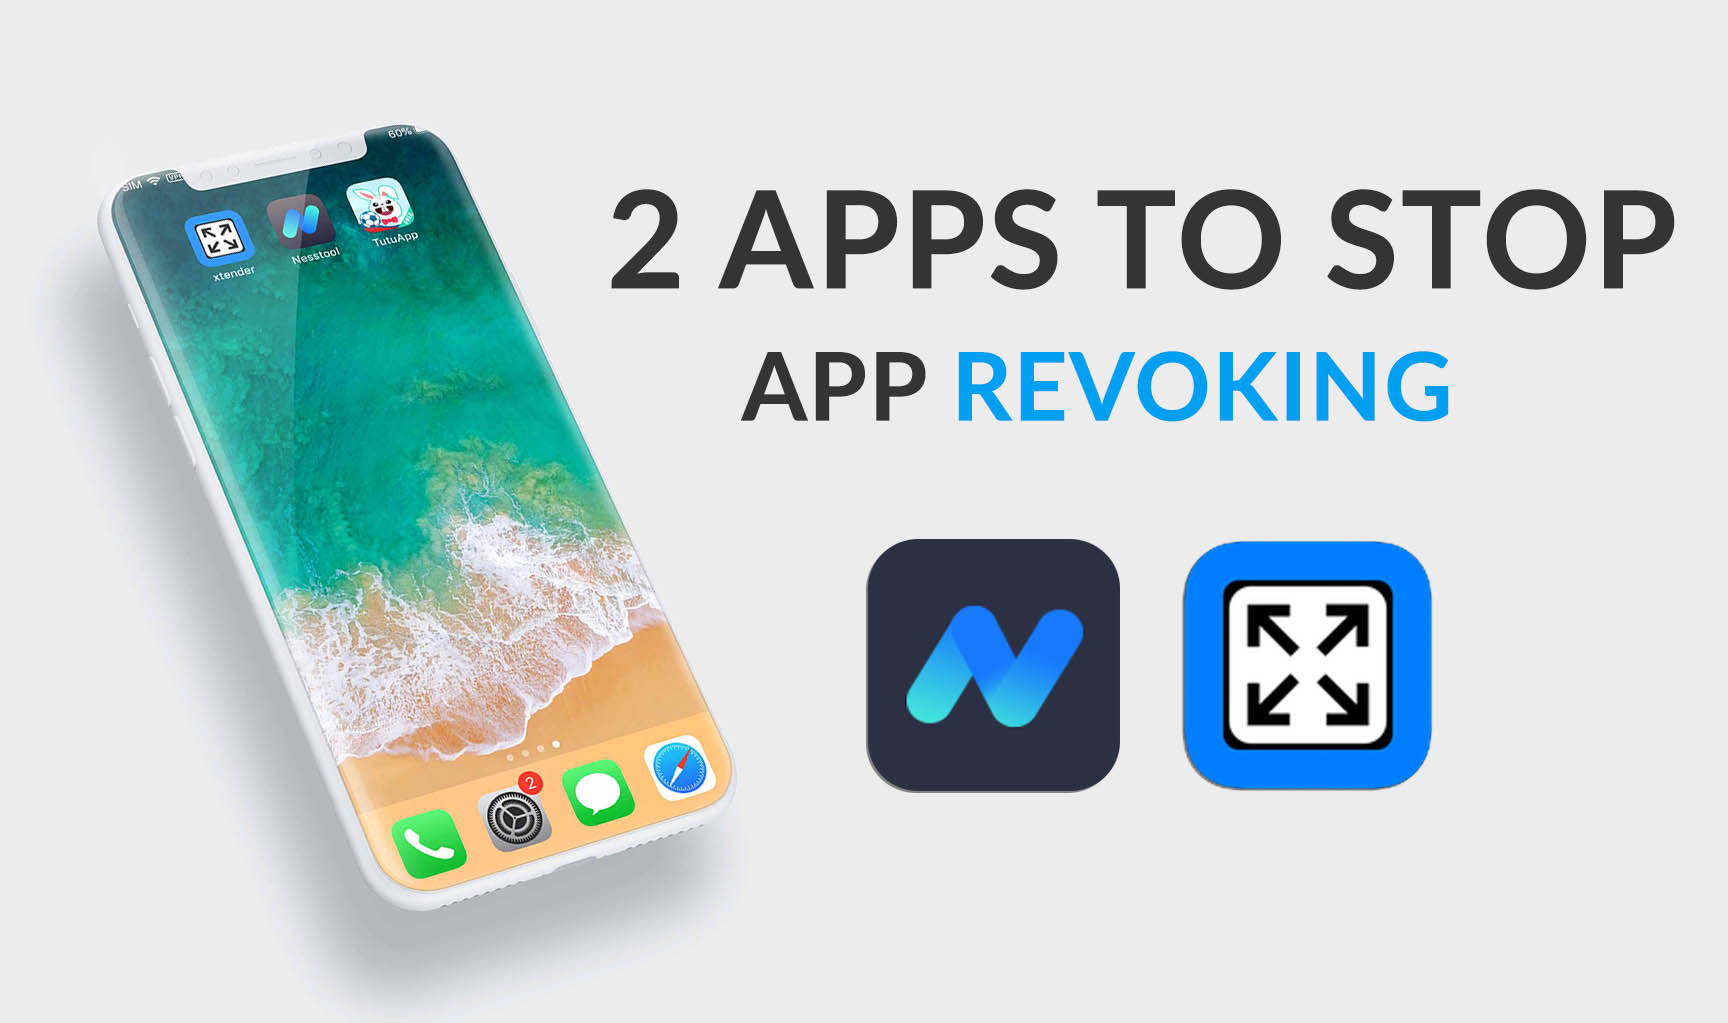 How to Stop App Revoking/Crashing on iOS 12 - (New Update